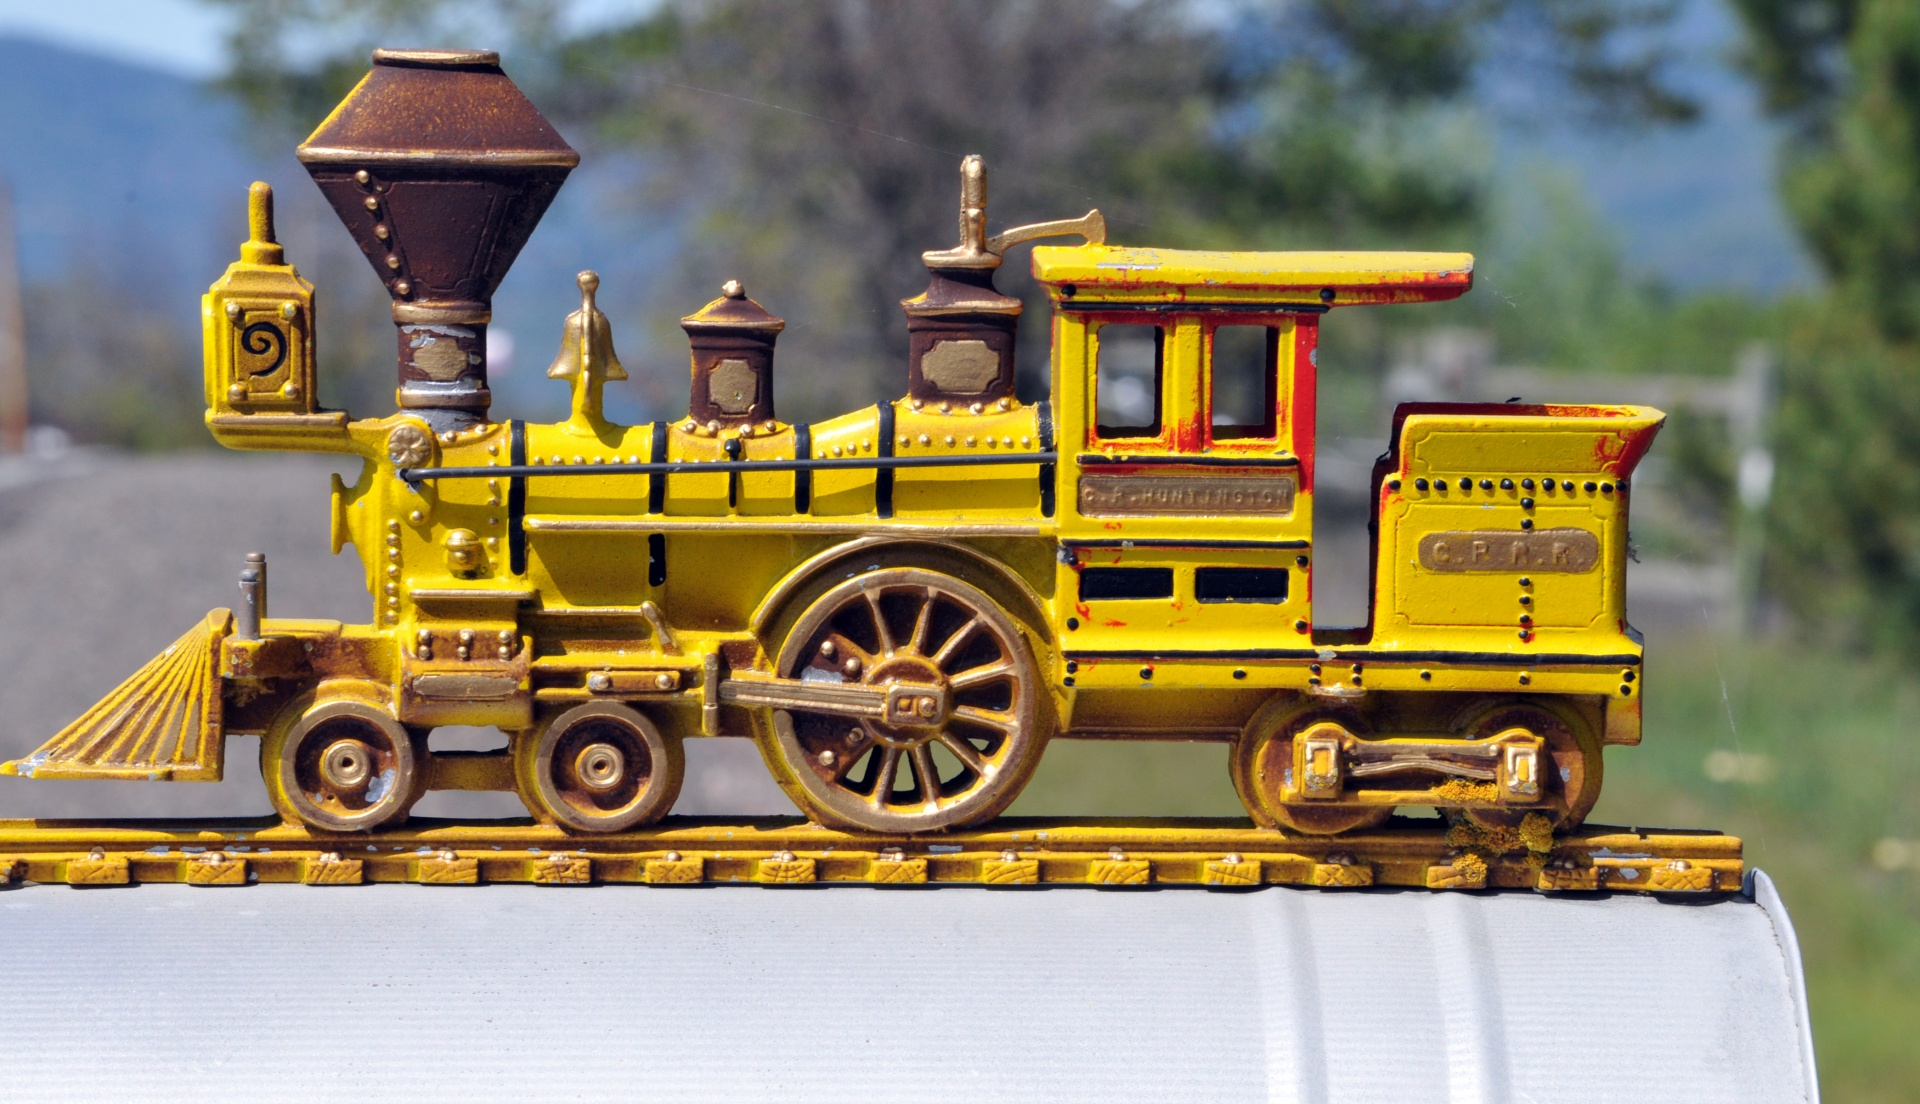 Yellow Train On Mailbox Free Stock Photo - Public Domain Pictures